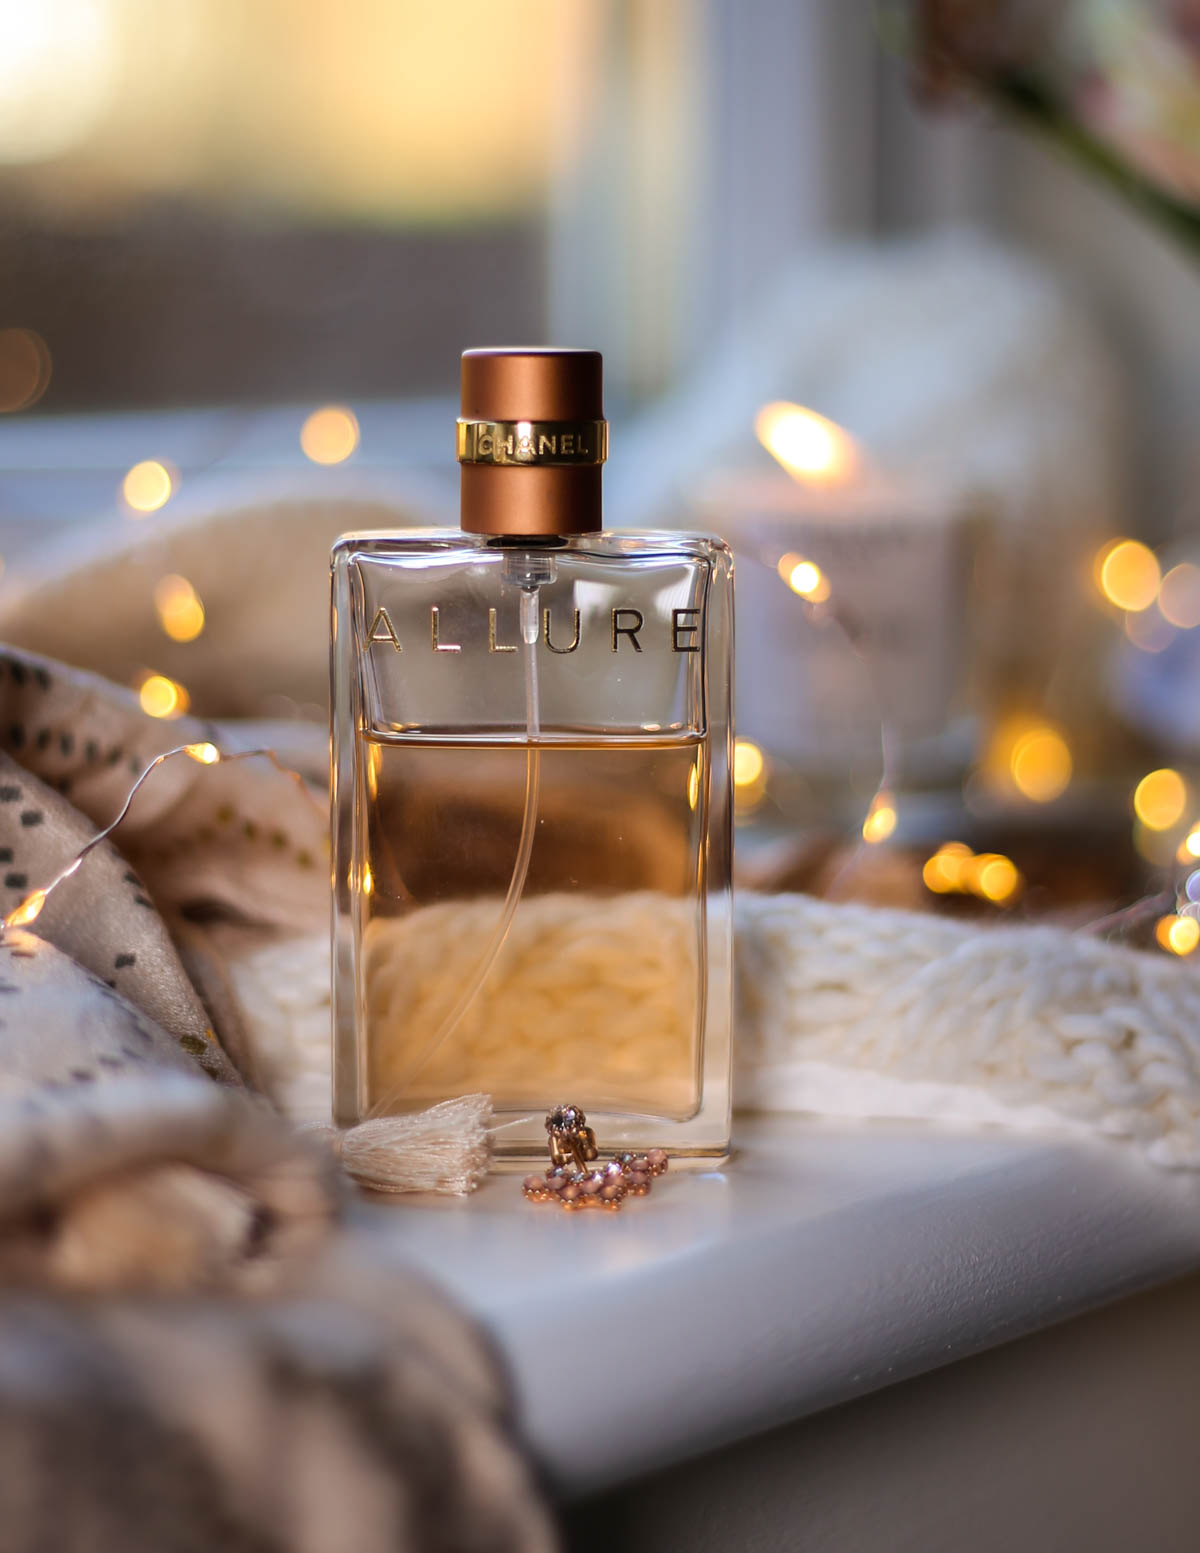 Blog Photography | How to Be More Creative With Your Photos | feat Chanel Allure on window sill with bokeh